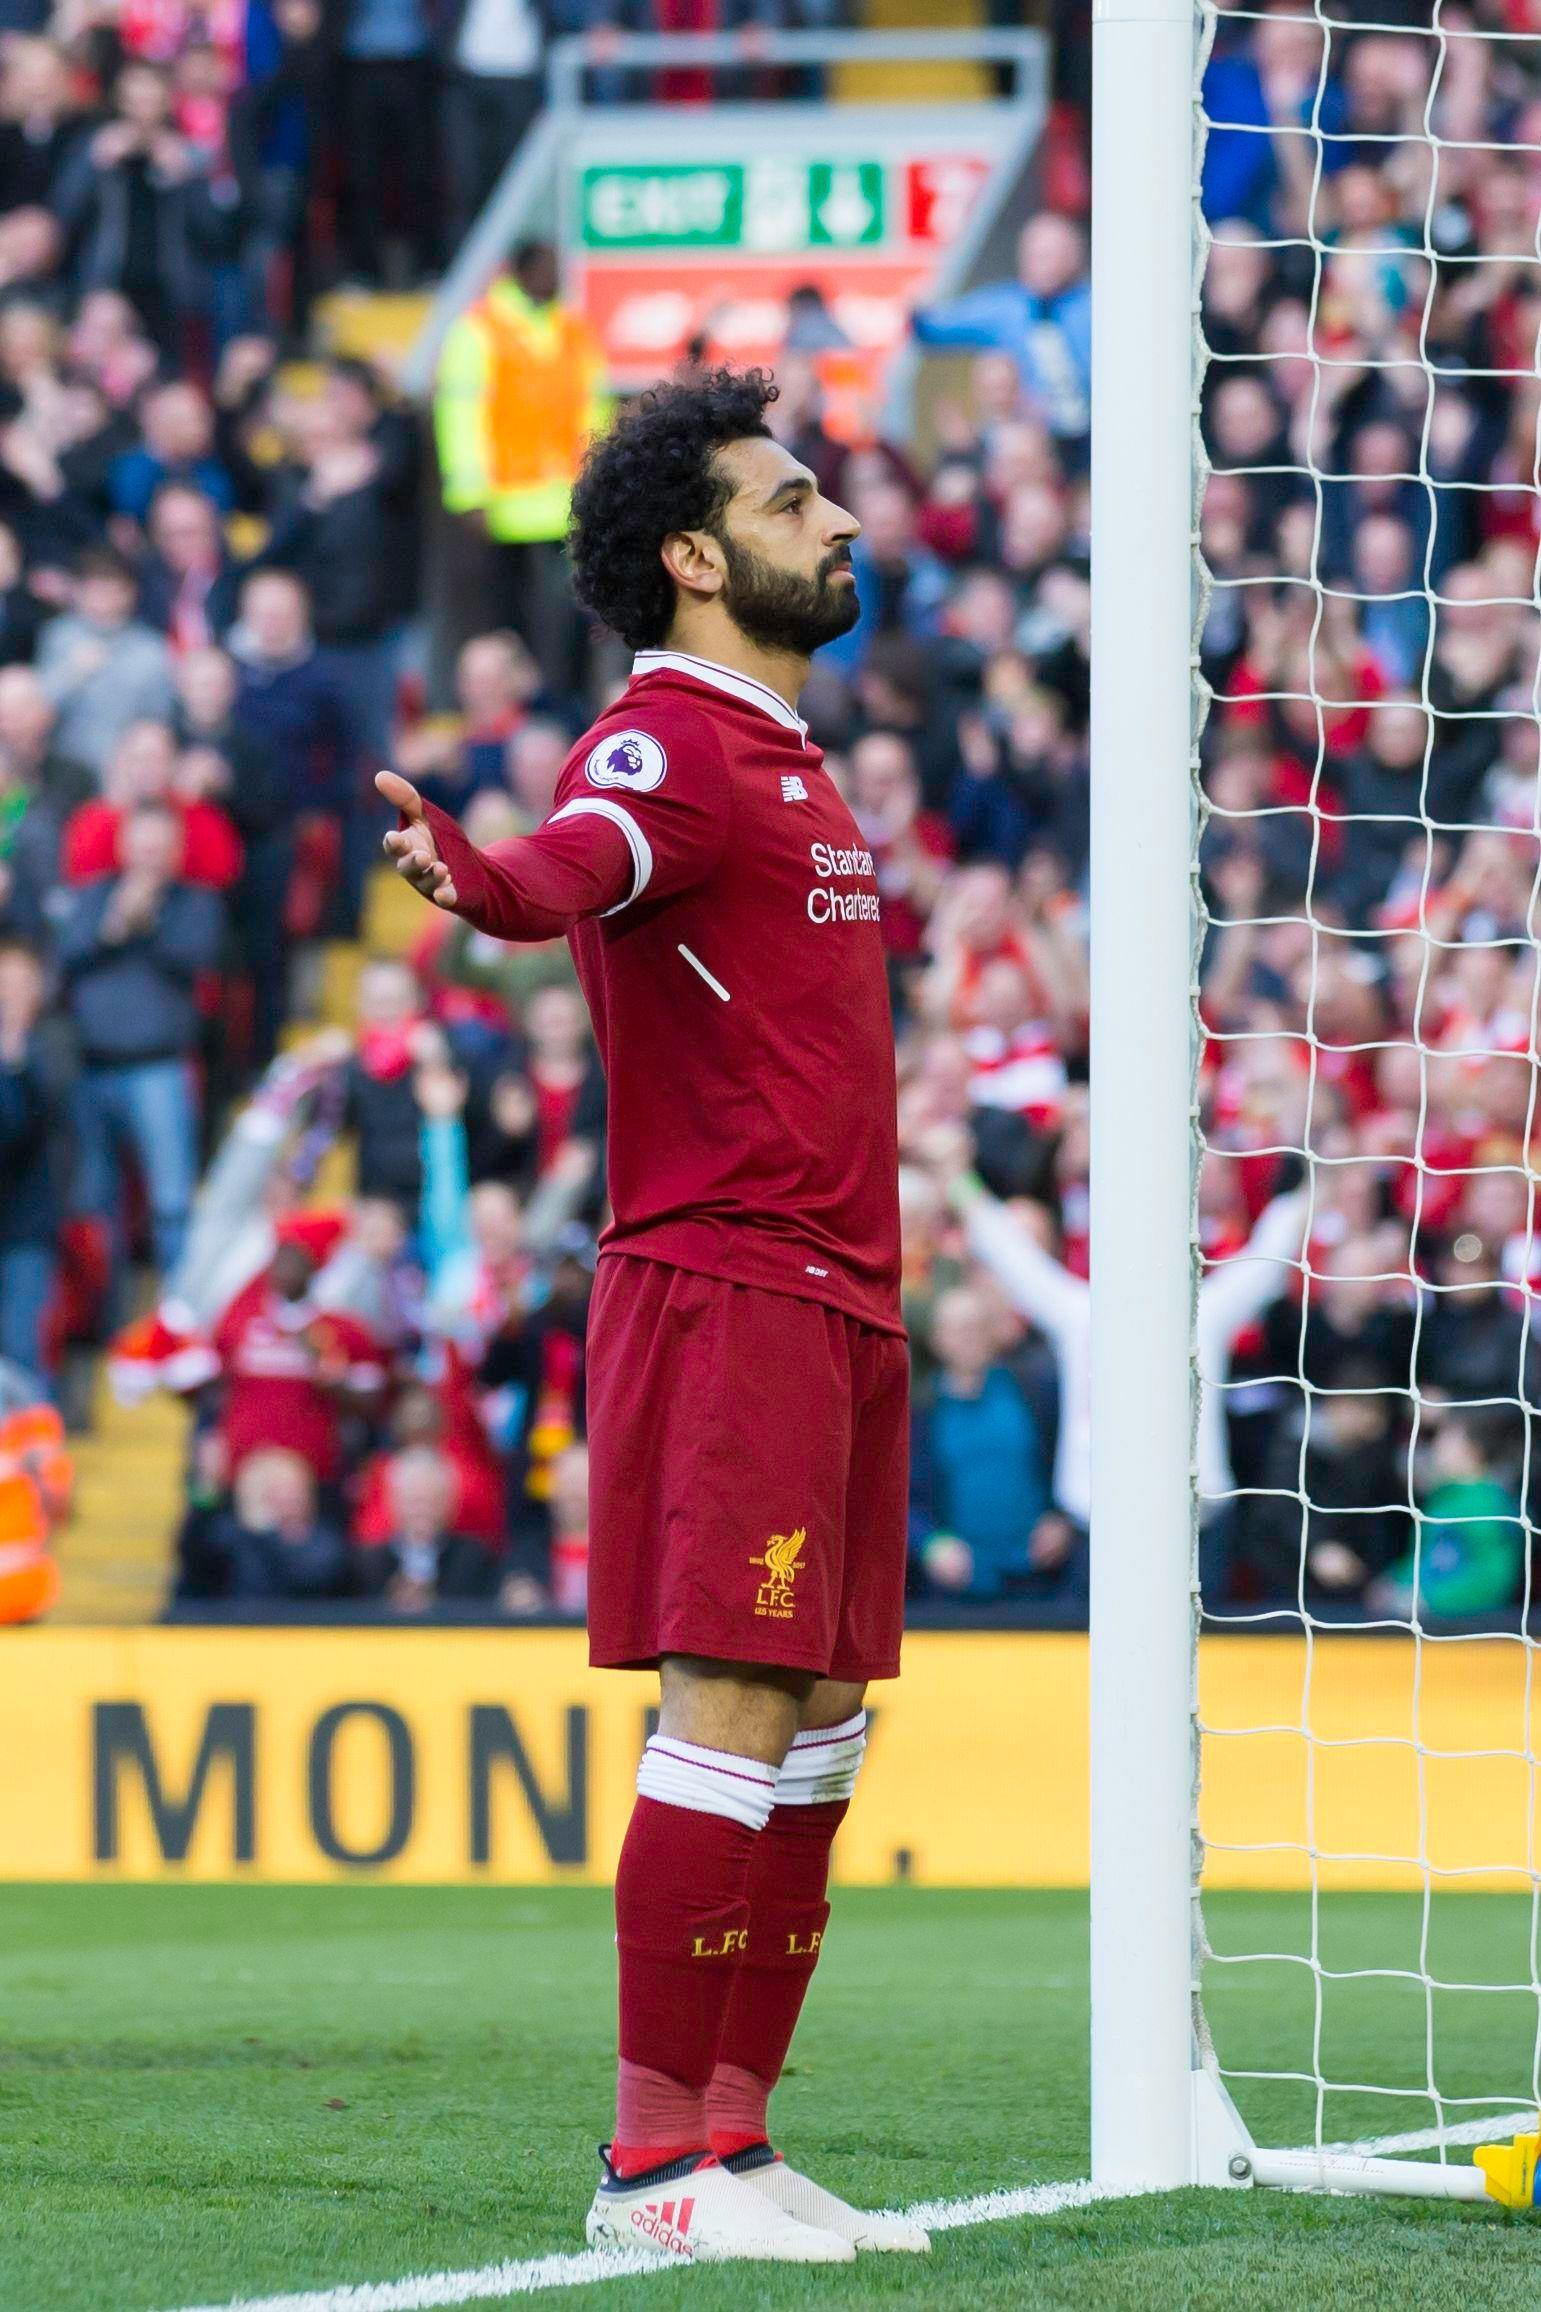 Mo Salah reached the 40-goal mark for Liverpool against Bournemouth